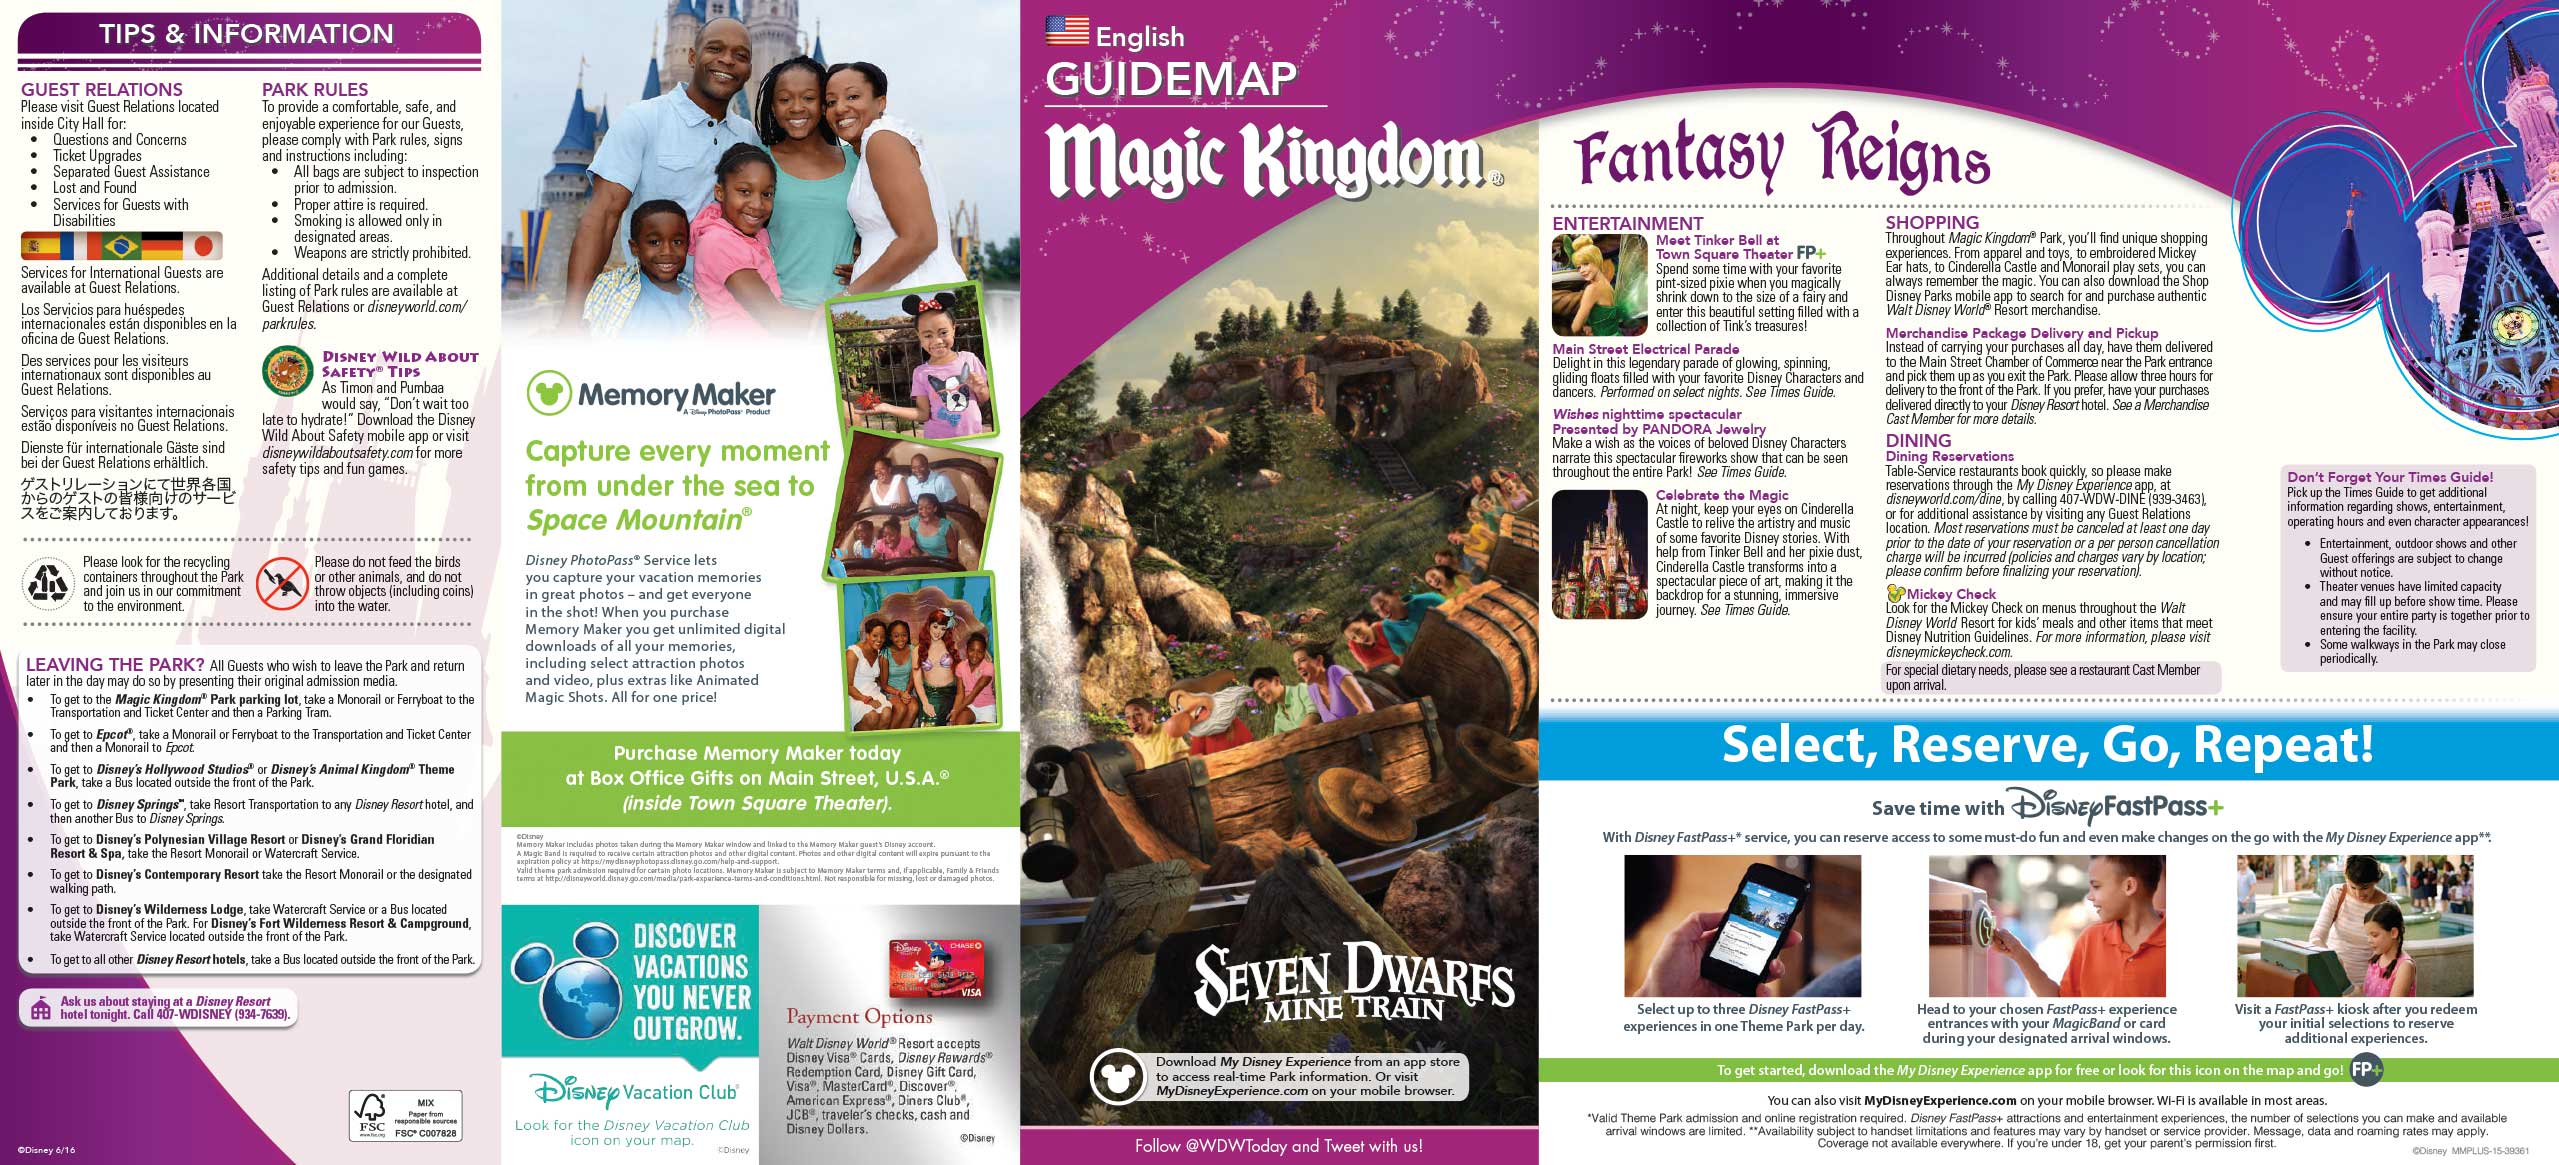 June 2016 Walt Disney World Park Maps